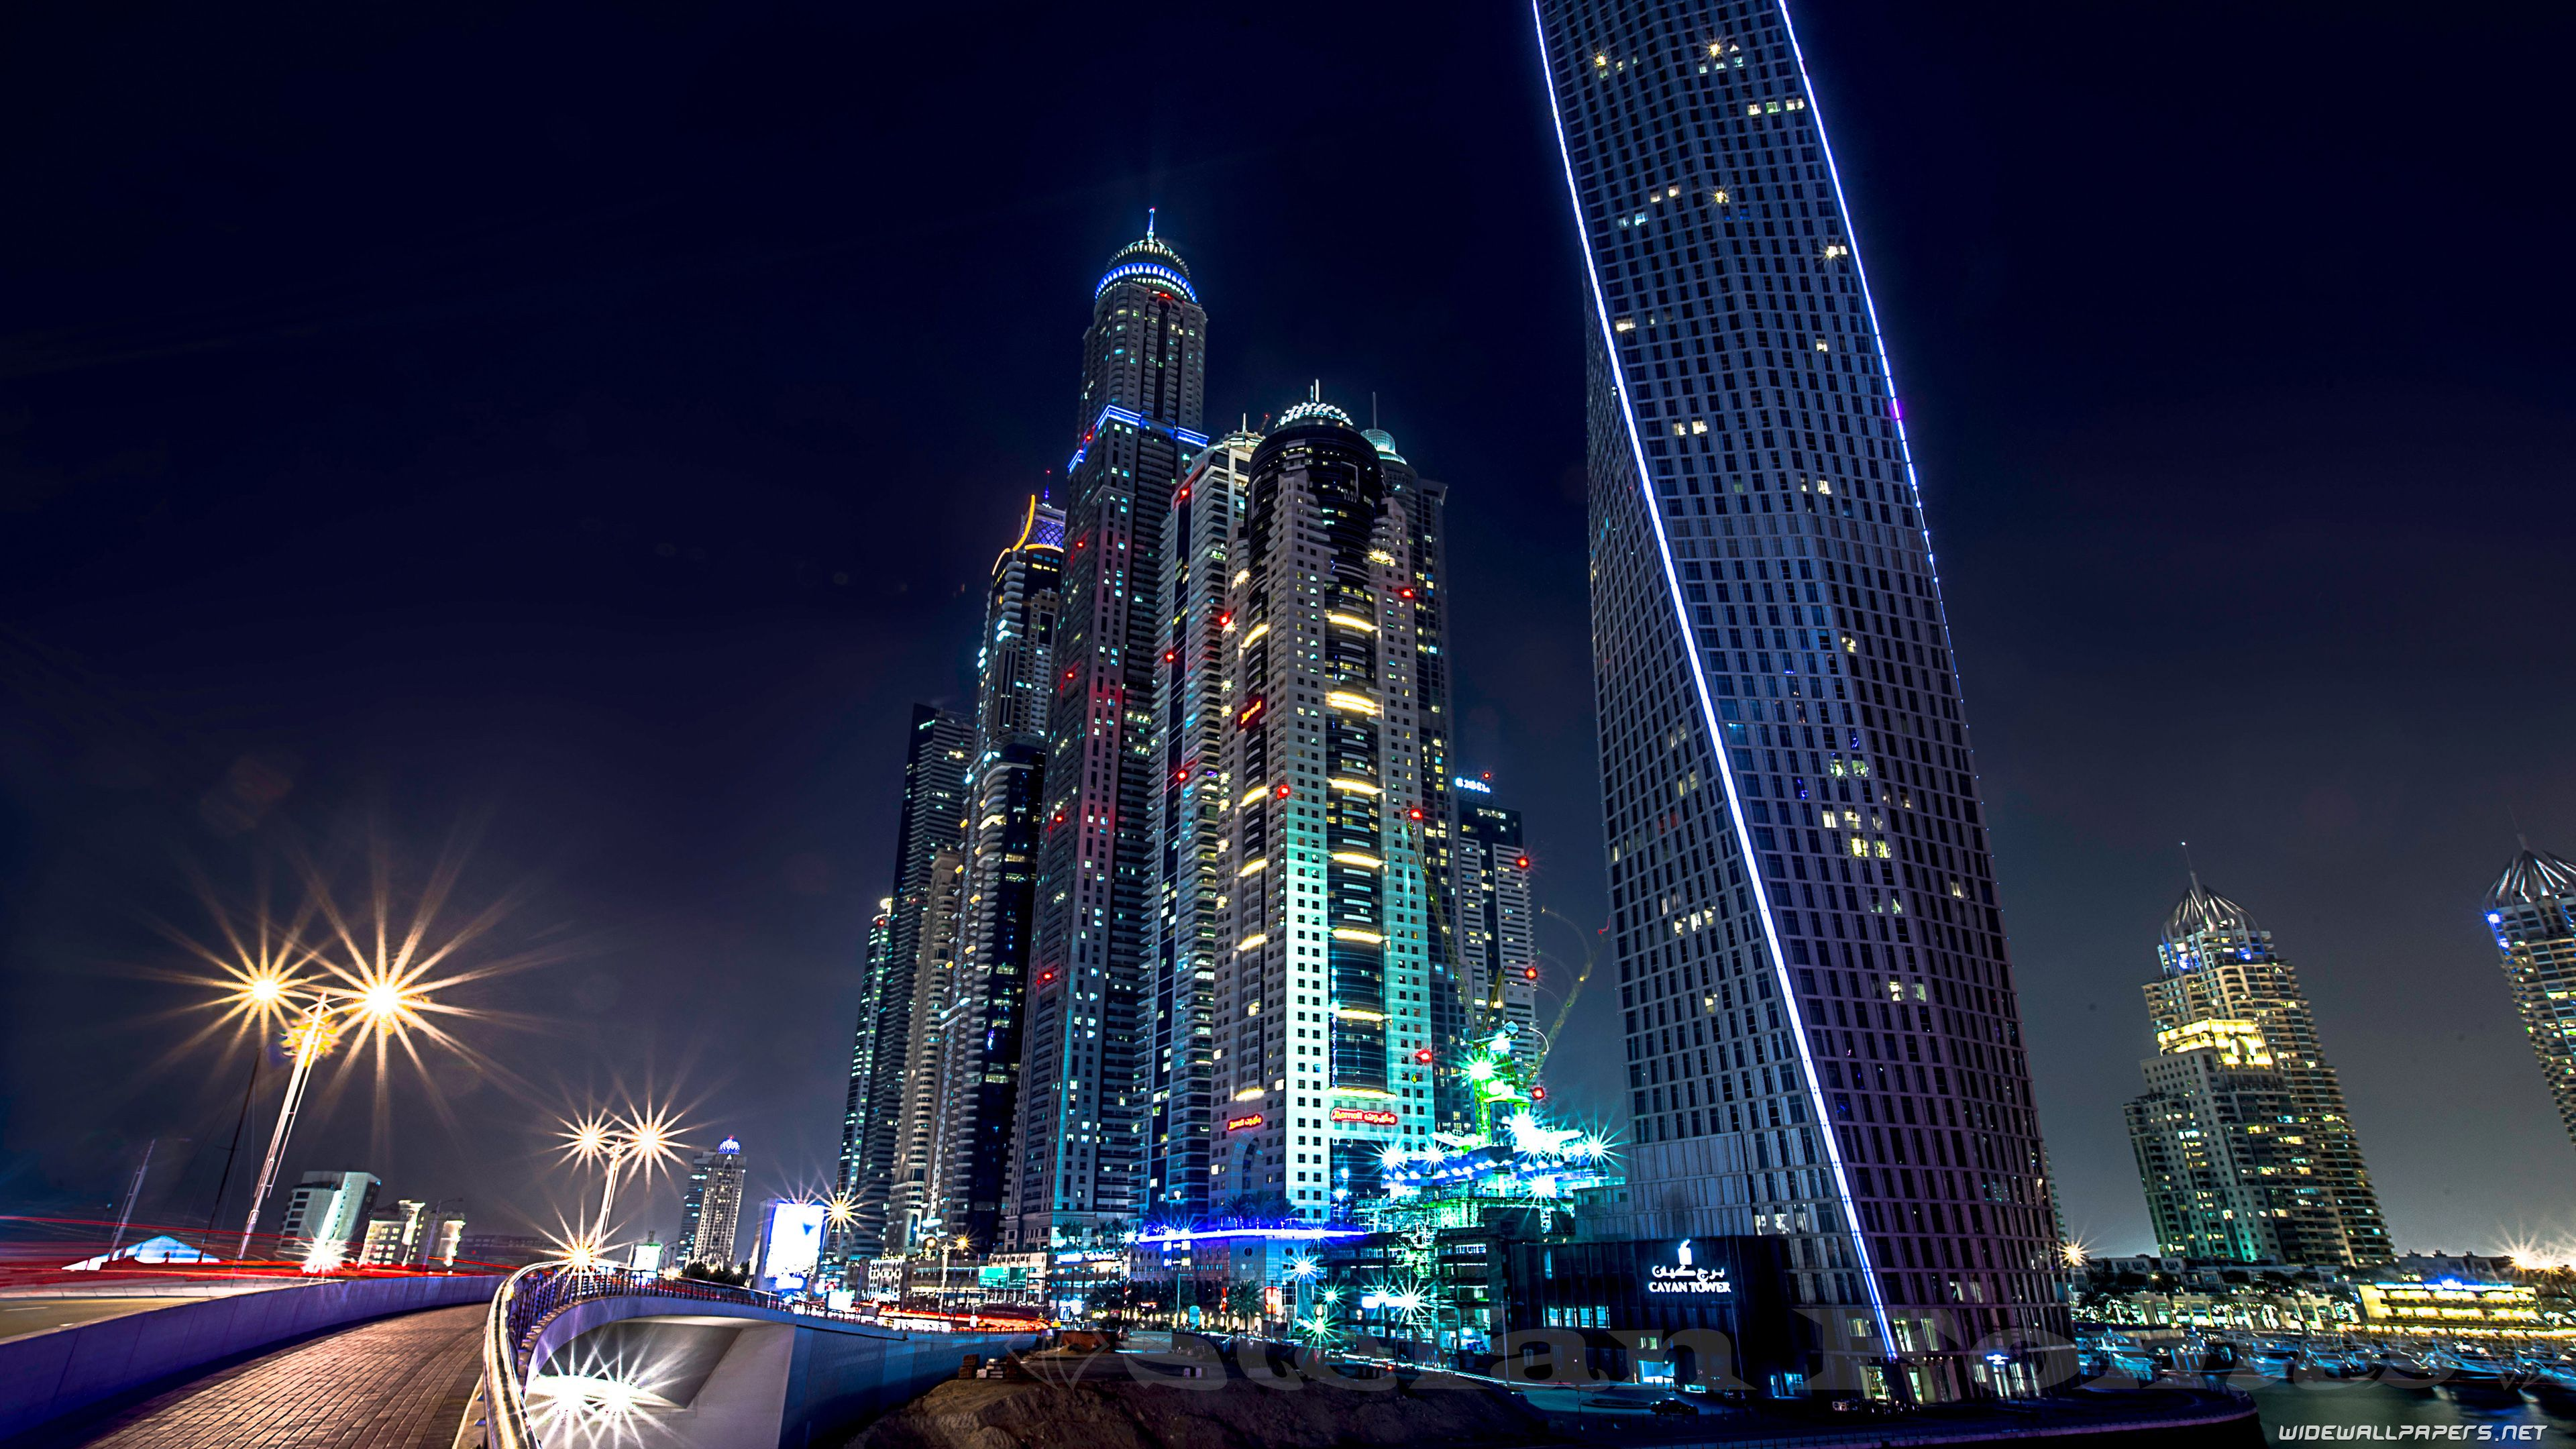 World Wallpaper HD Dubai 4k Wallpaper High Definition at